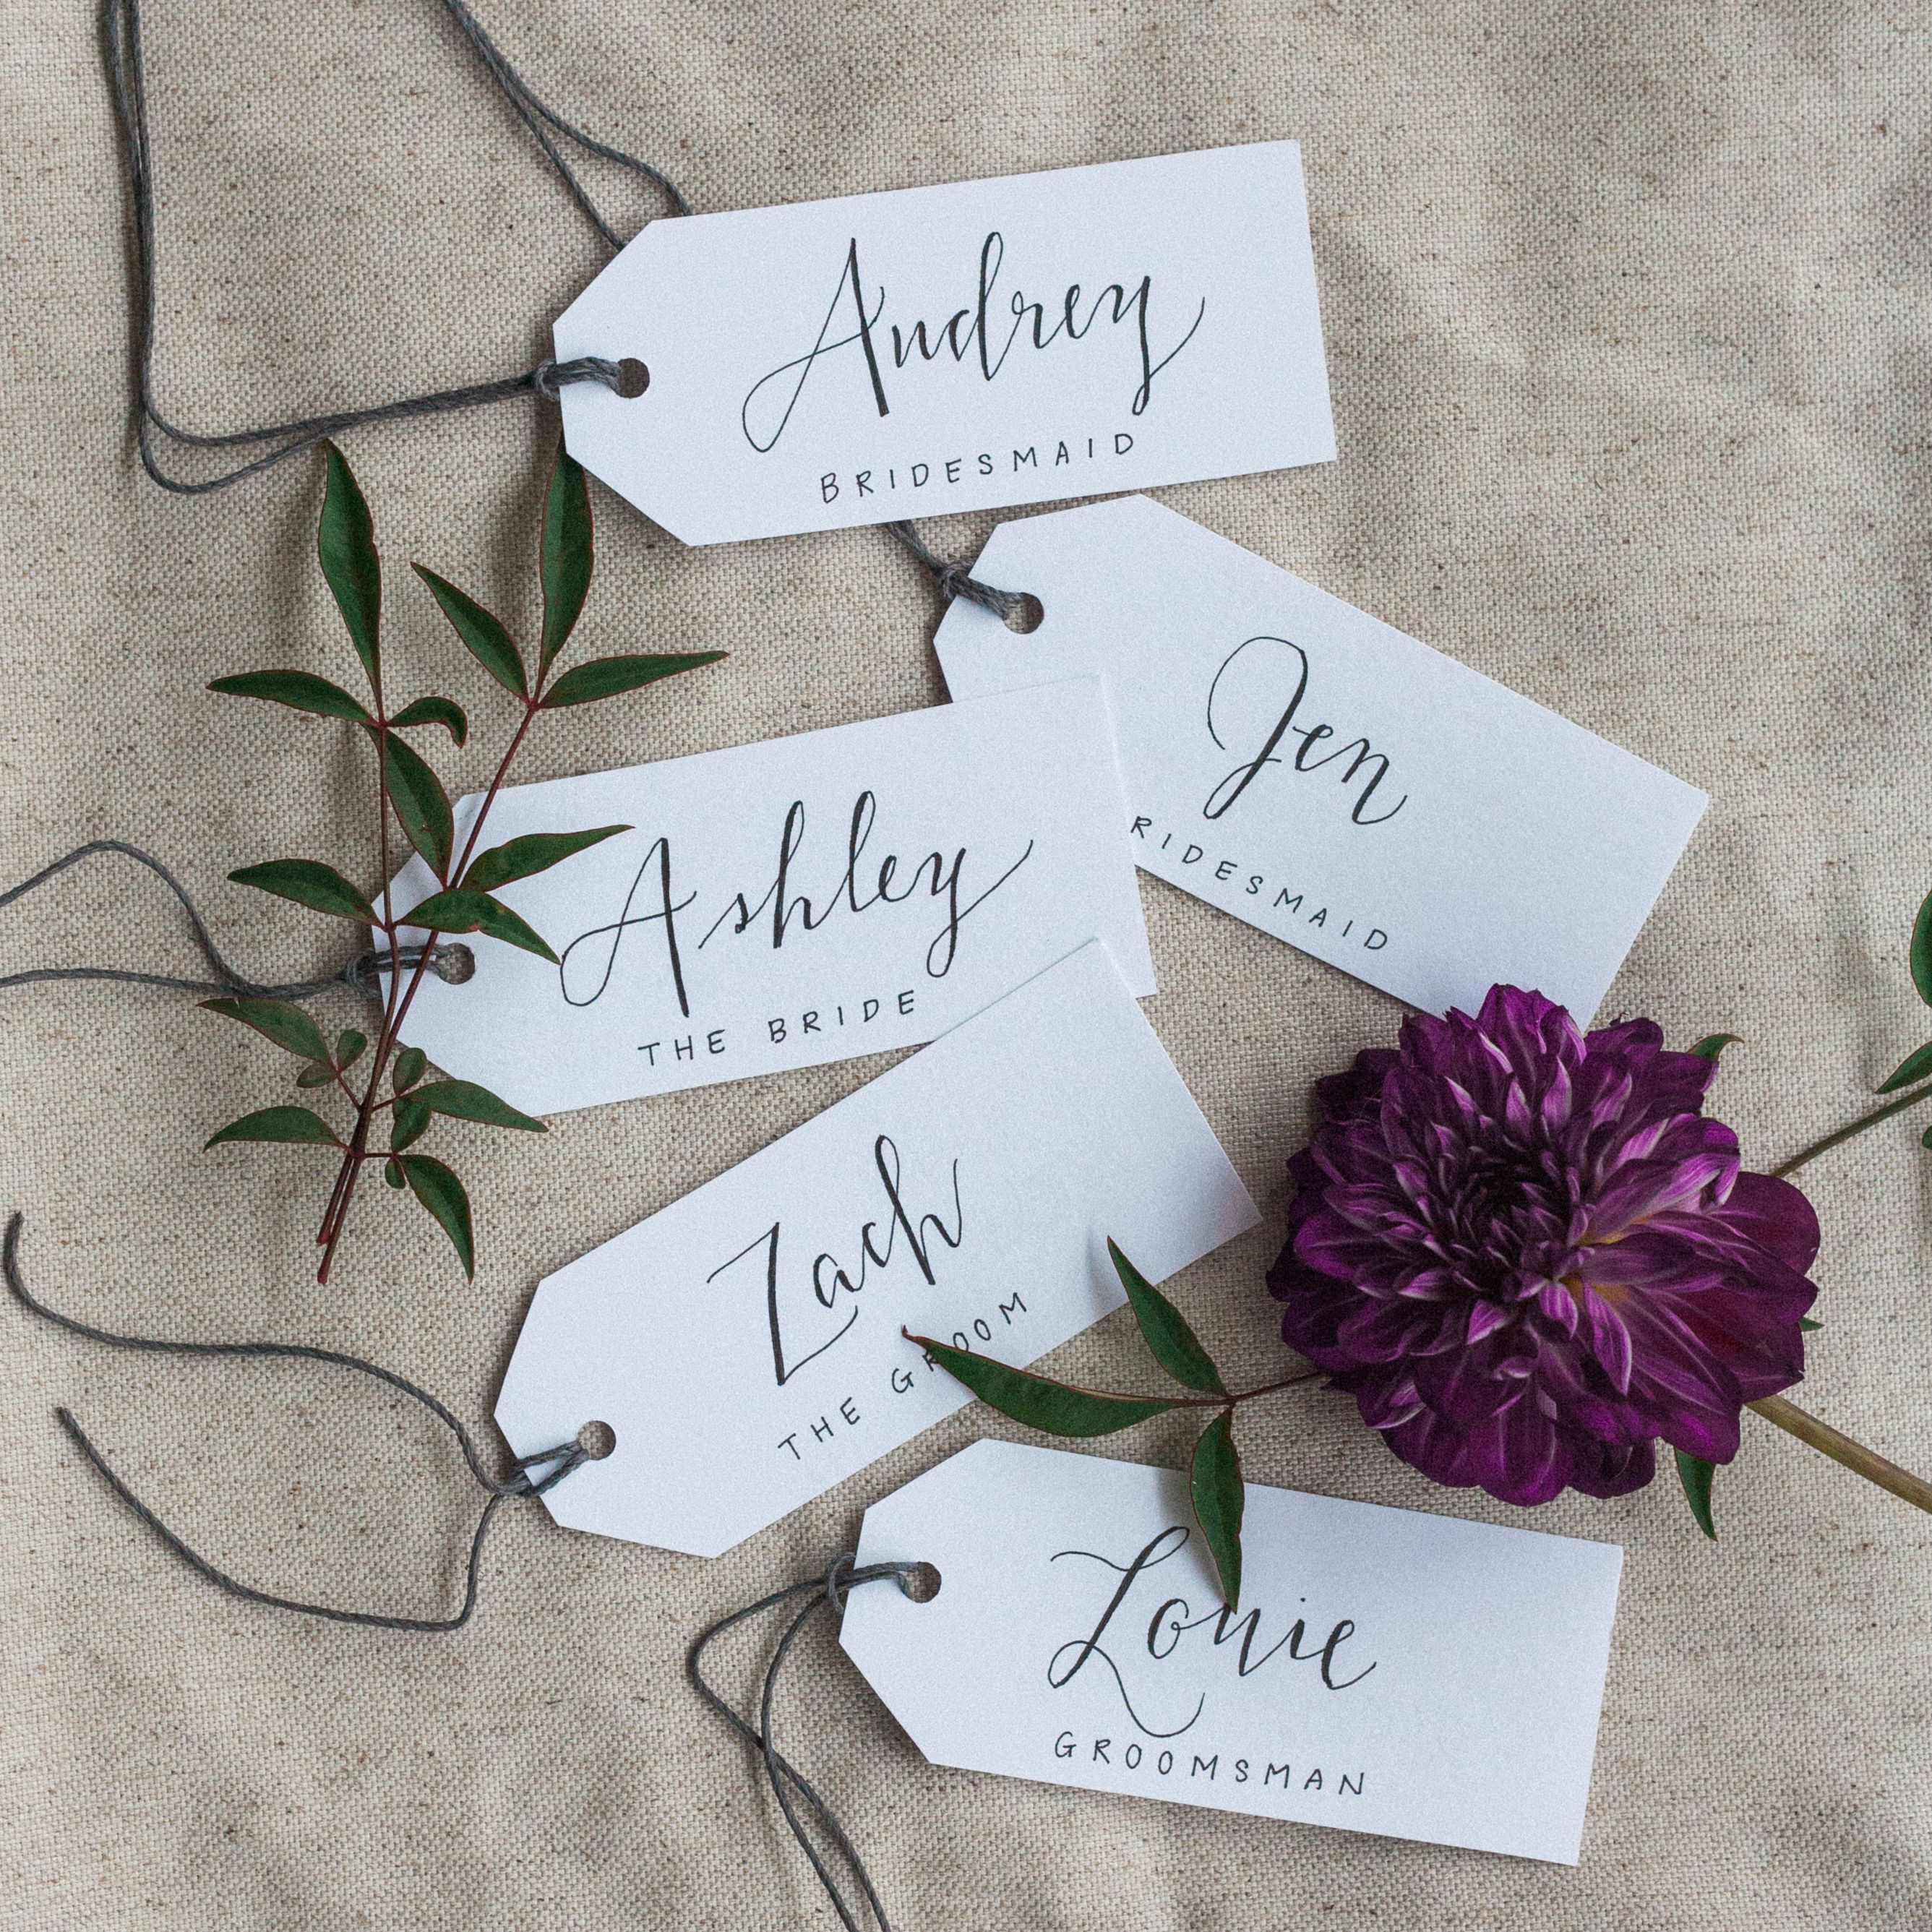 wedding party name tags the bride nametag maid of honor